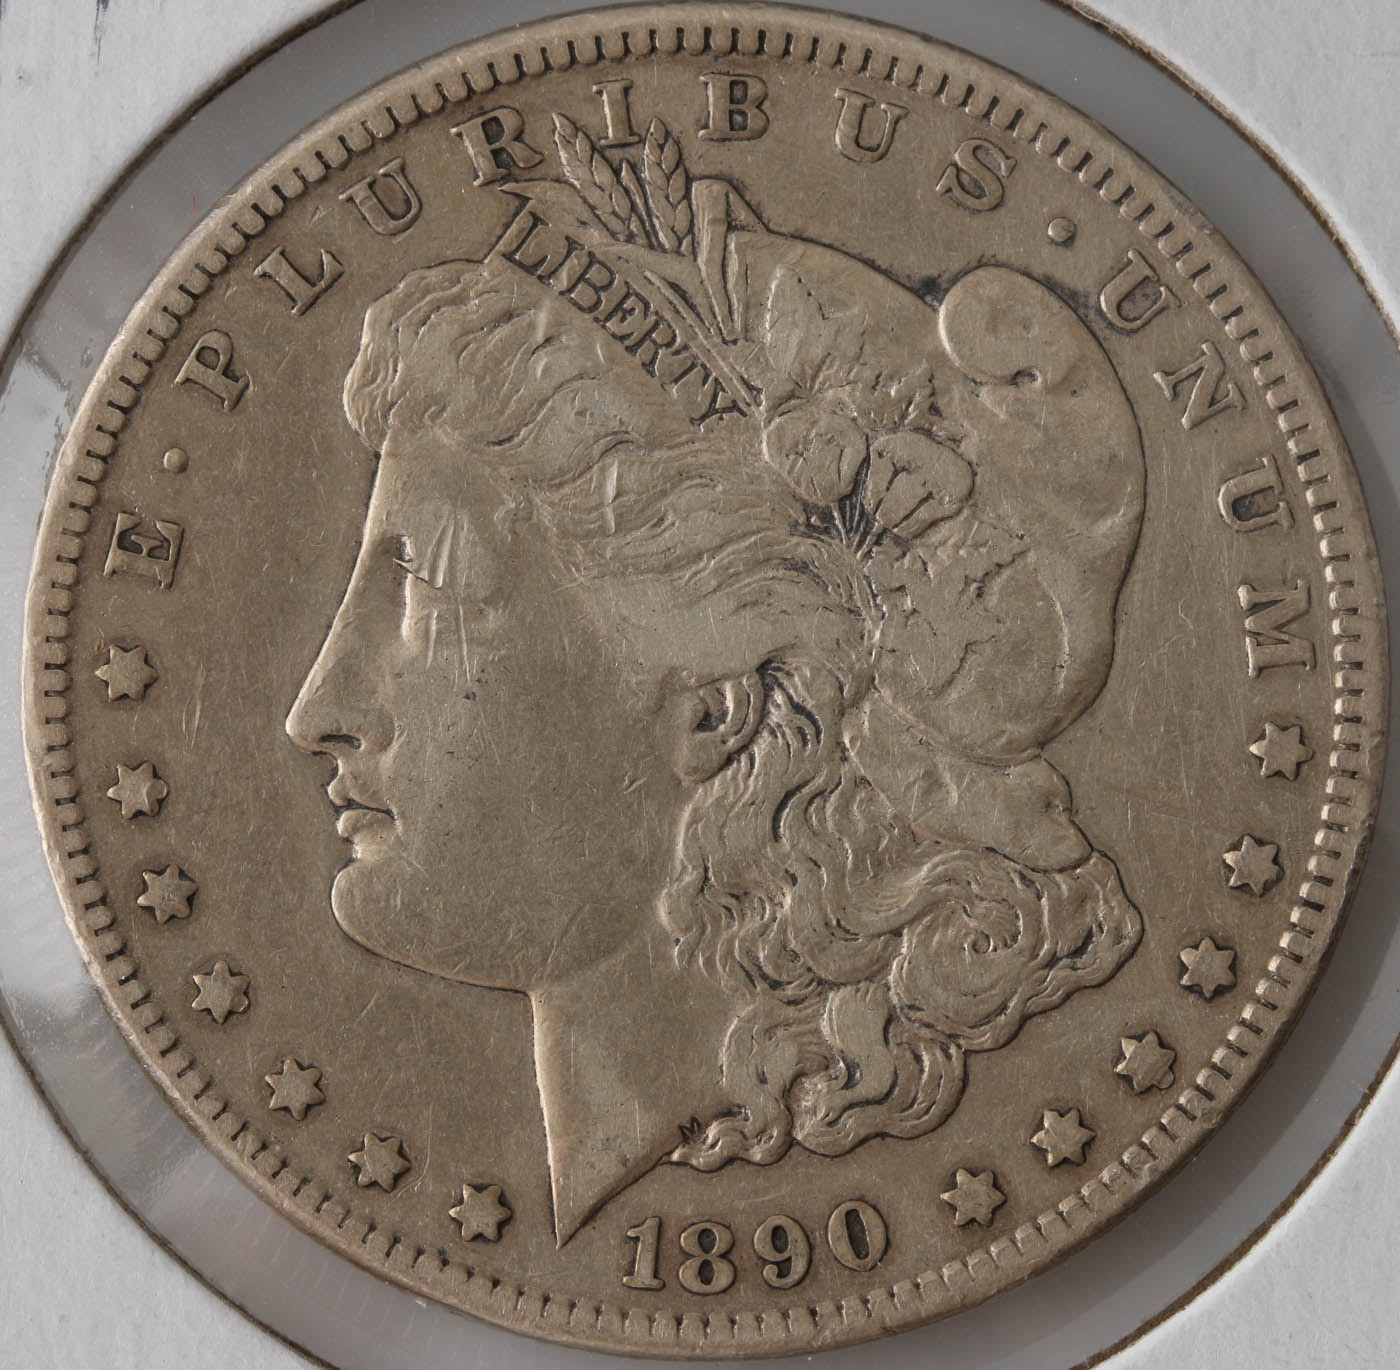 1890 Carson City Silver Morgan Dollar